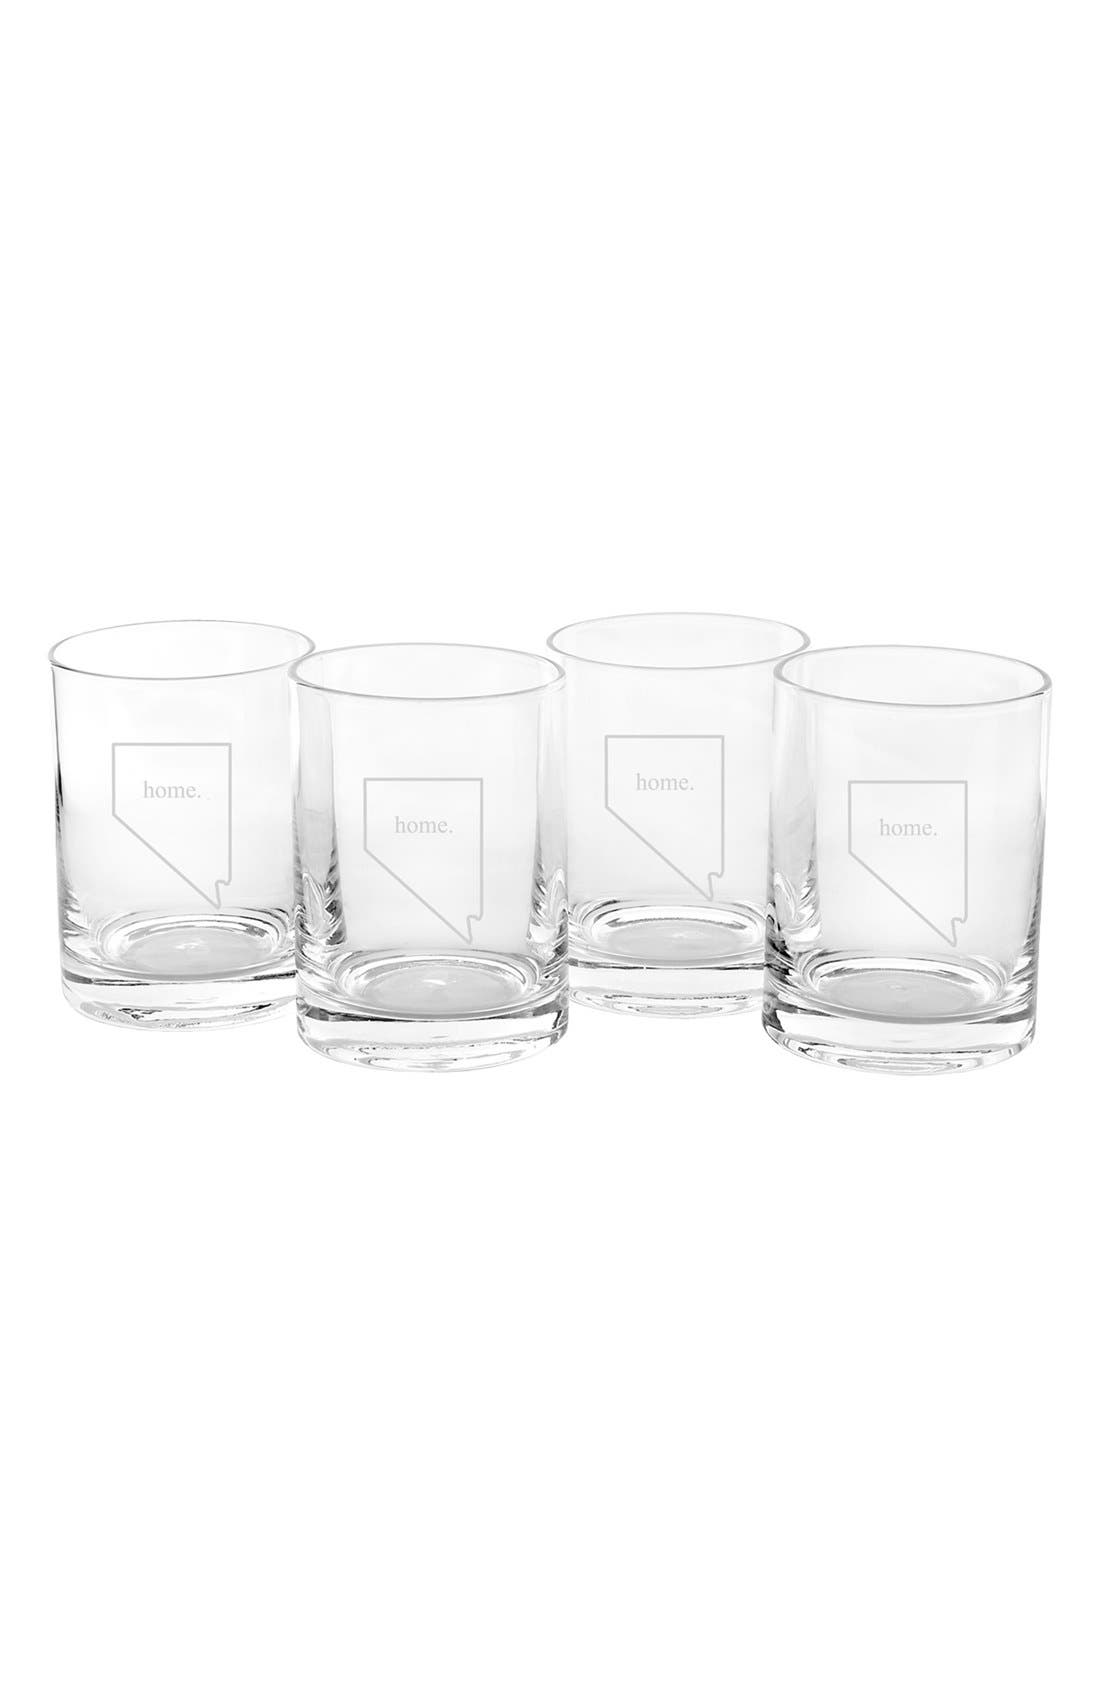 Cathy's Concepts 'Home State' Glasses (Set of 4)